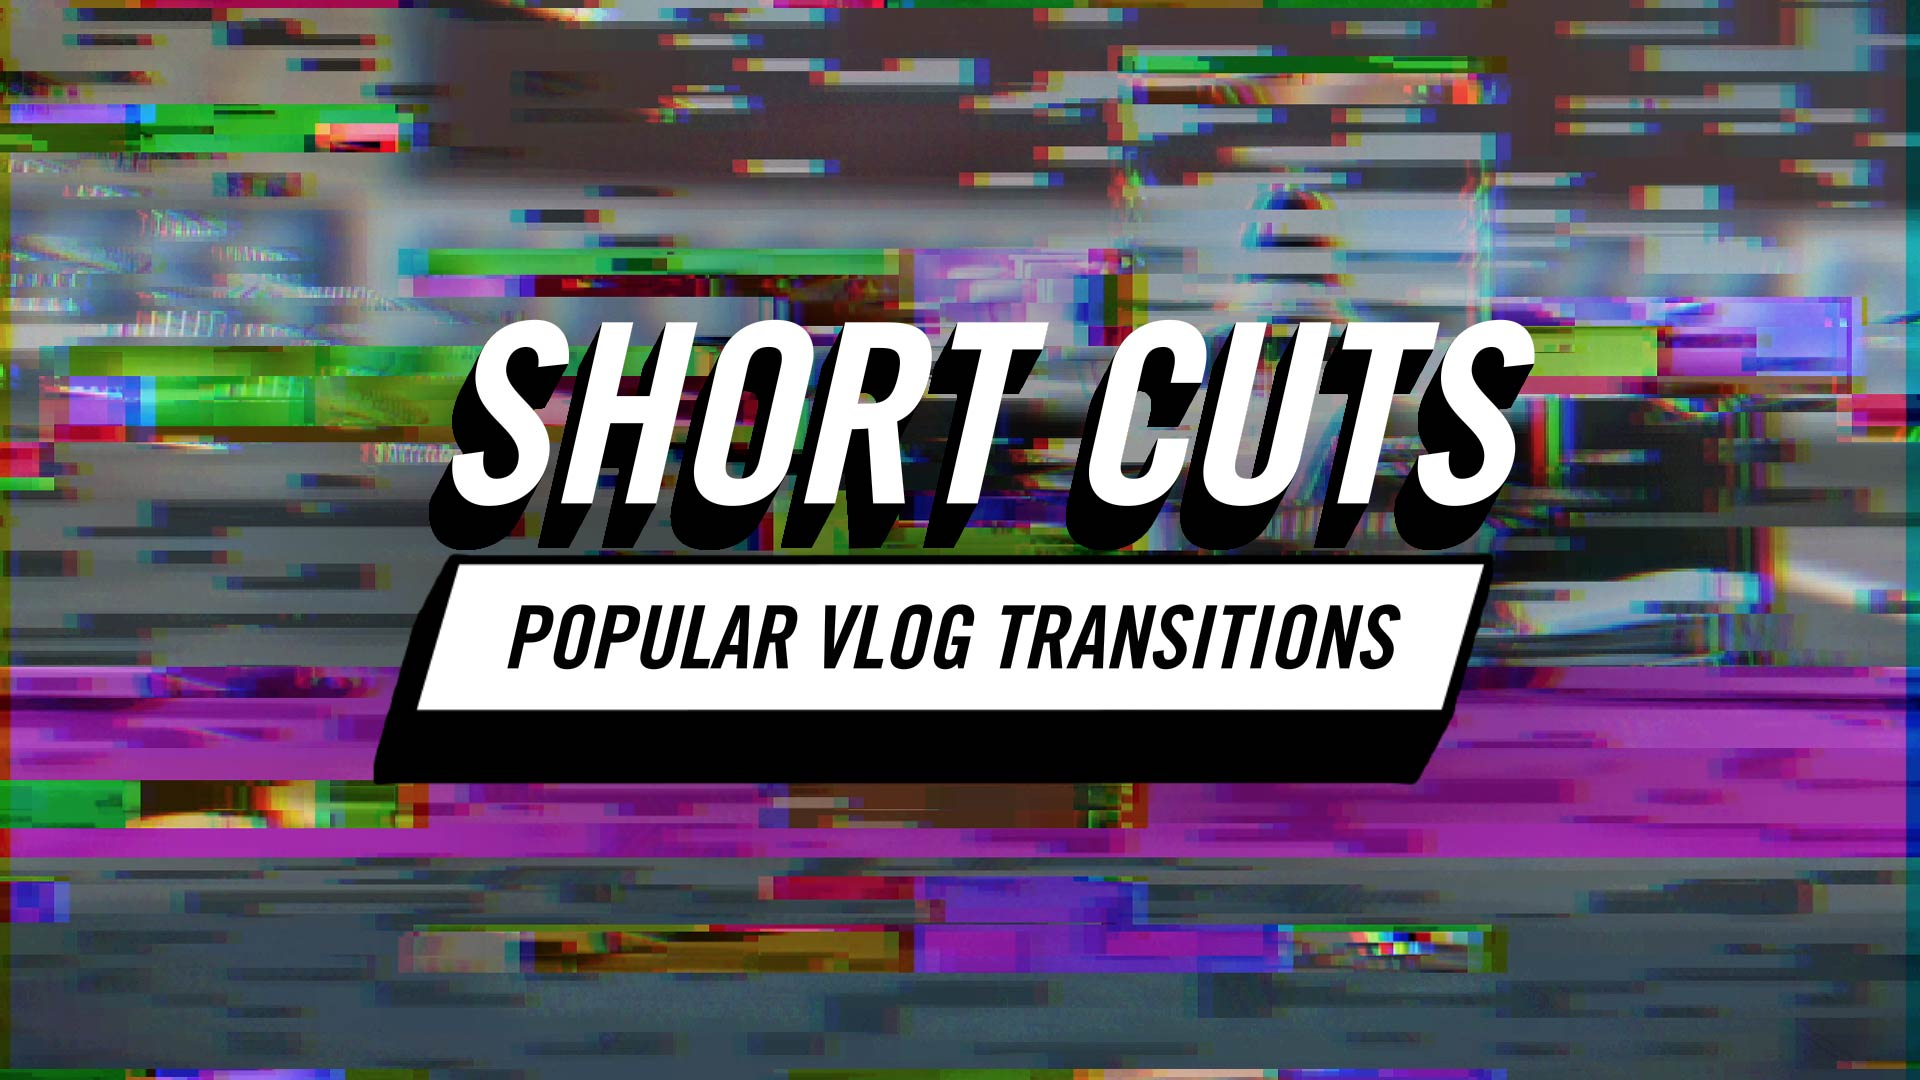 Short Cuts - Popular Vlog Transitions